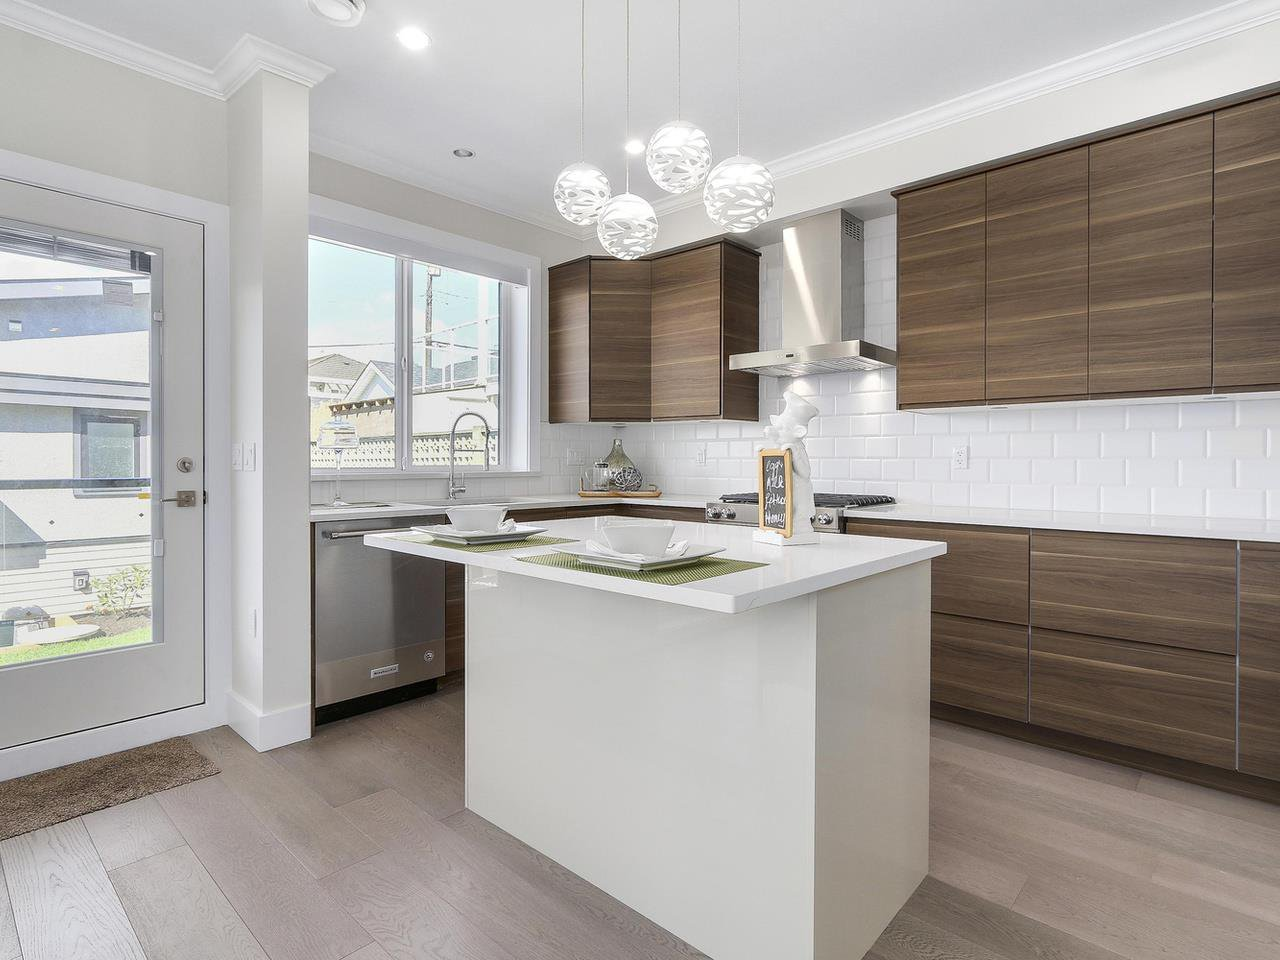 Photo 8: Photos: 3539 ETON STREET in Vancouver: Hastings East House for sale (Vancouver East)  : MLS®# R2159493